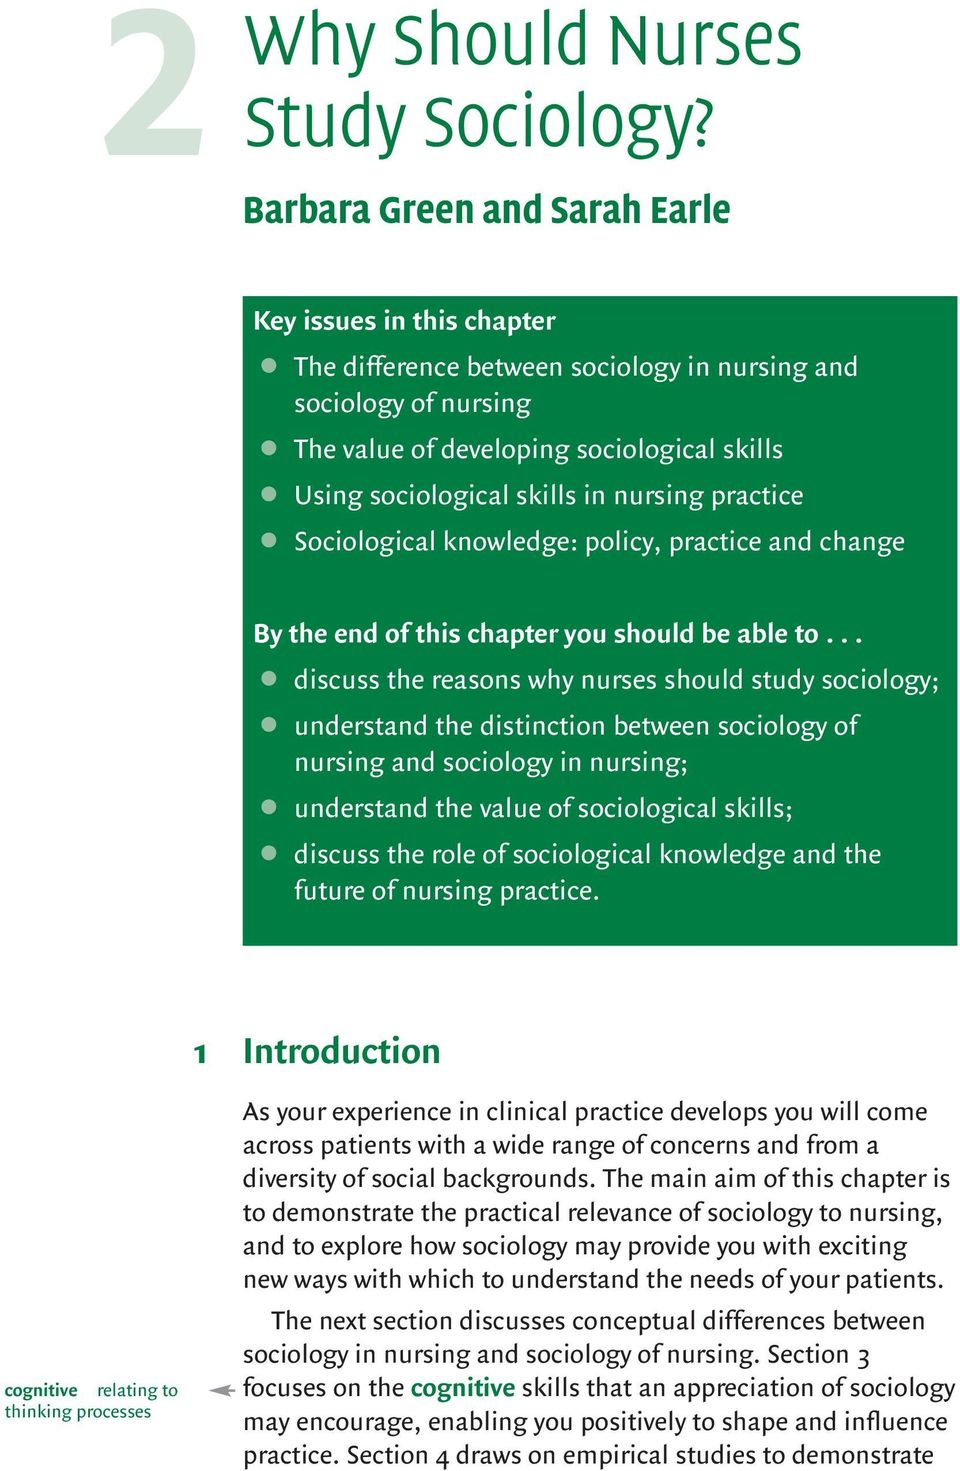 nursing practice Sociological knowledge: policy, practice and change By the end of this chapter you should be able to.